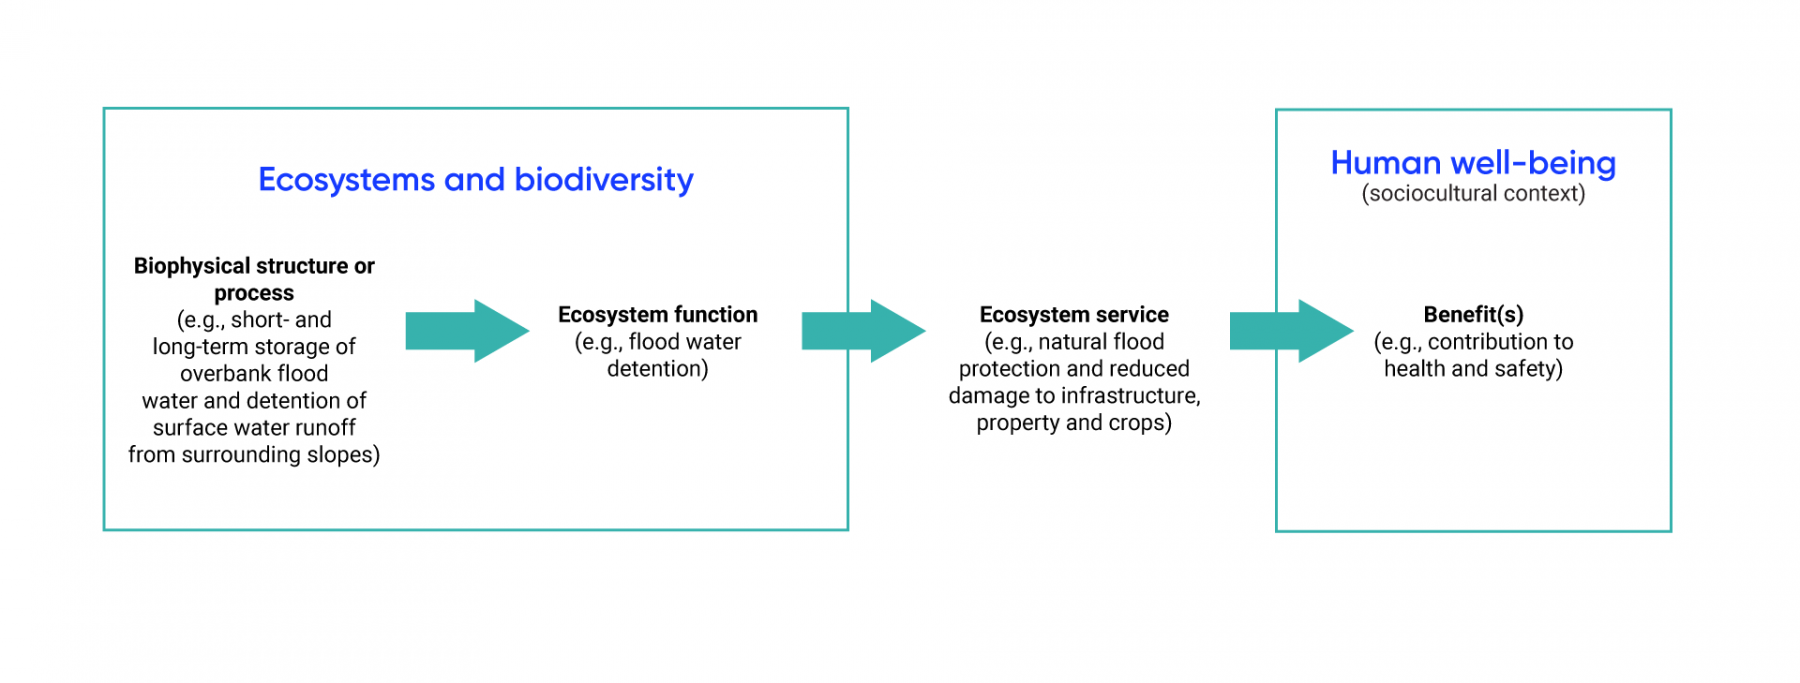 Flow chart diagram displays the link between ecosystems and biodiversity and human well-being. Biophysical structures or processes (e.g., short and long term storage of overbank flood water and detention of surface water runoff from surrounding slopes) provide ecosystem functions (e.g., flood water detention), which produce an ecosystem service (e.g., natural flood protection, reduced damage to infrastructure, property and crops). Ecosystem services then provides benefits to human well-being (for example, by contributing to health and safety).